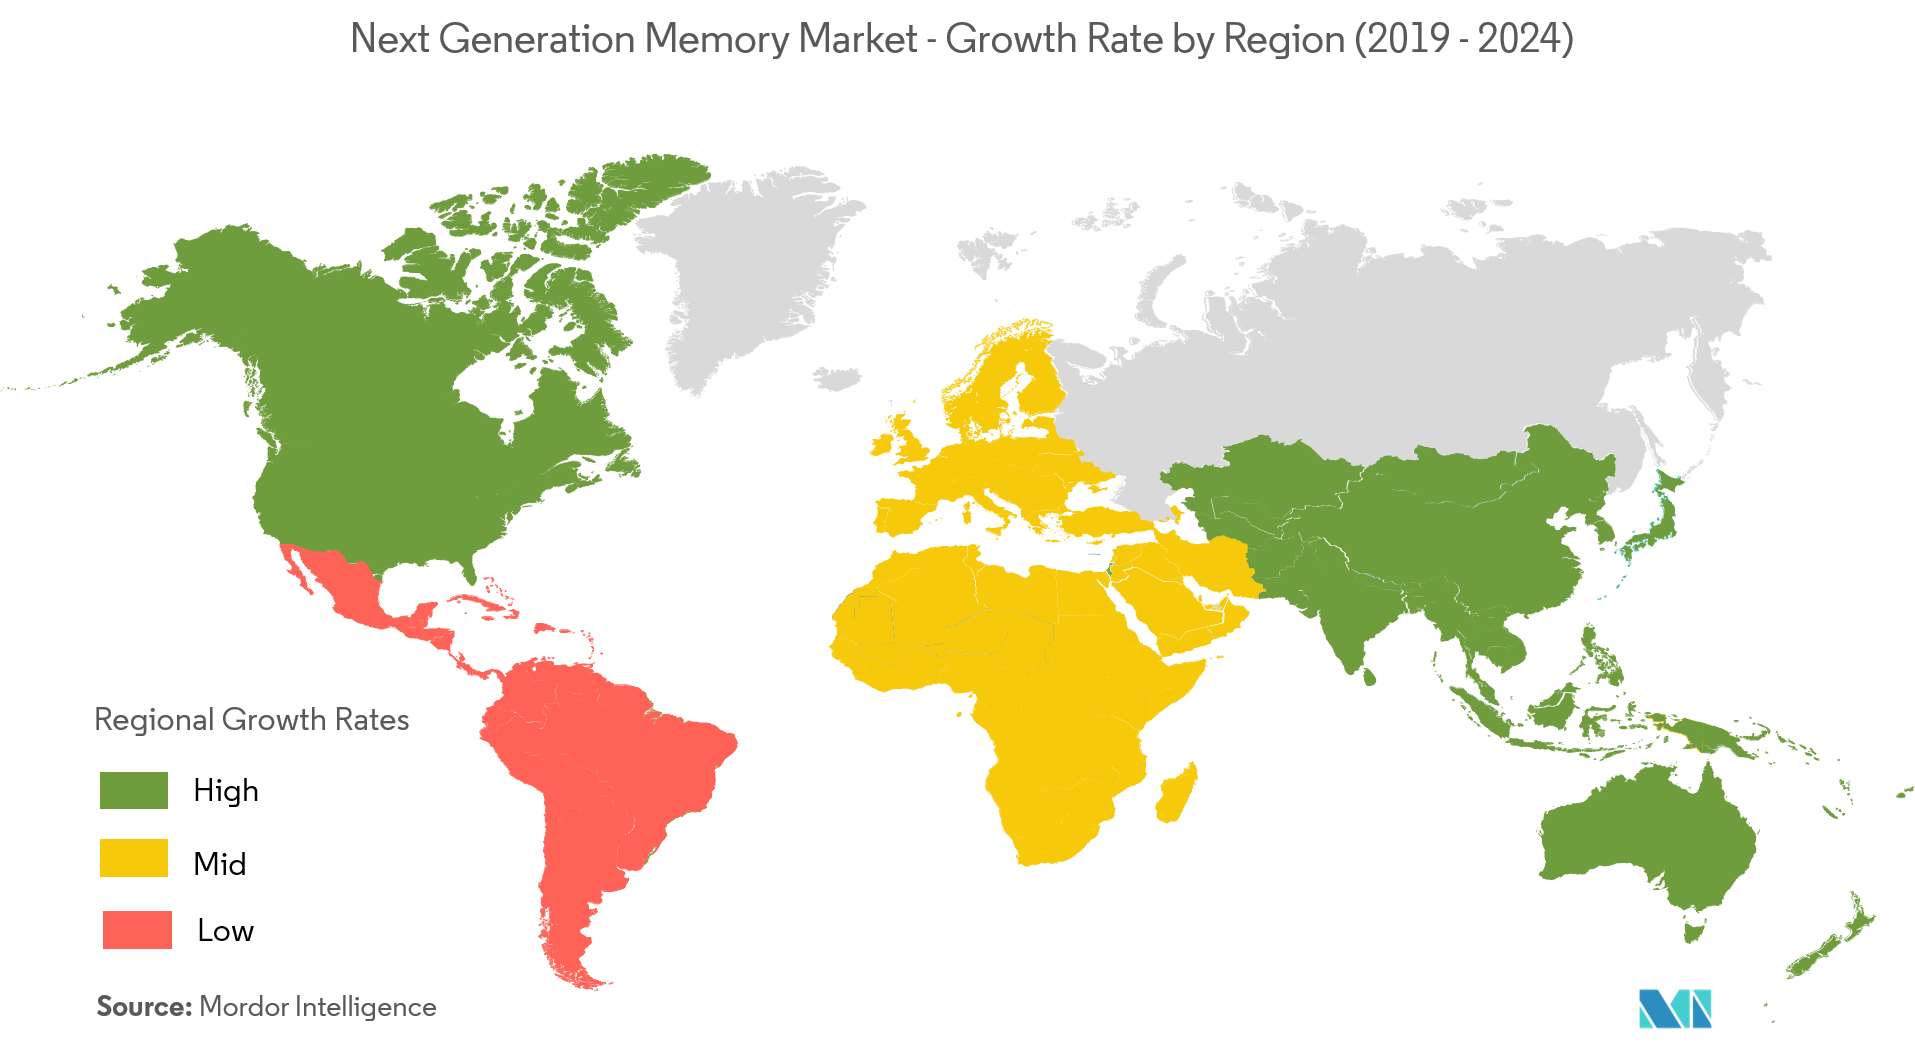 Next Generation Memory Market Growth Rate By Region